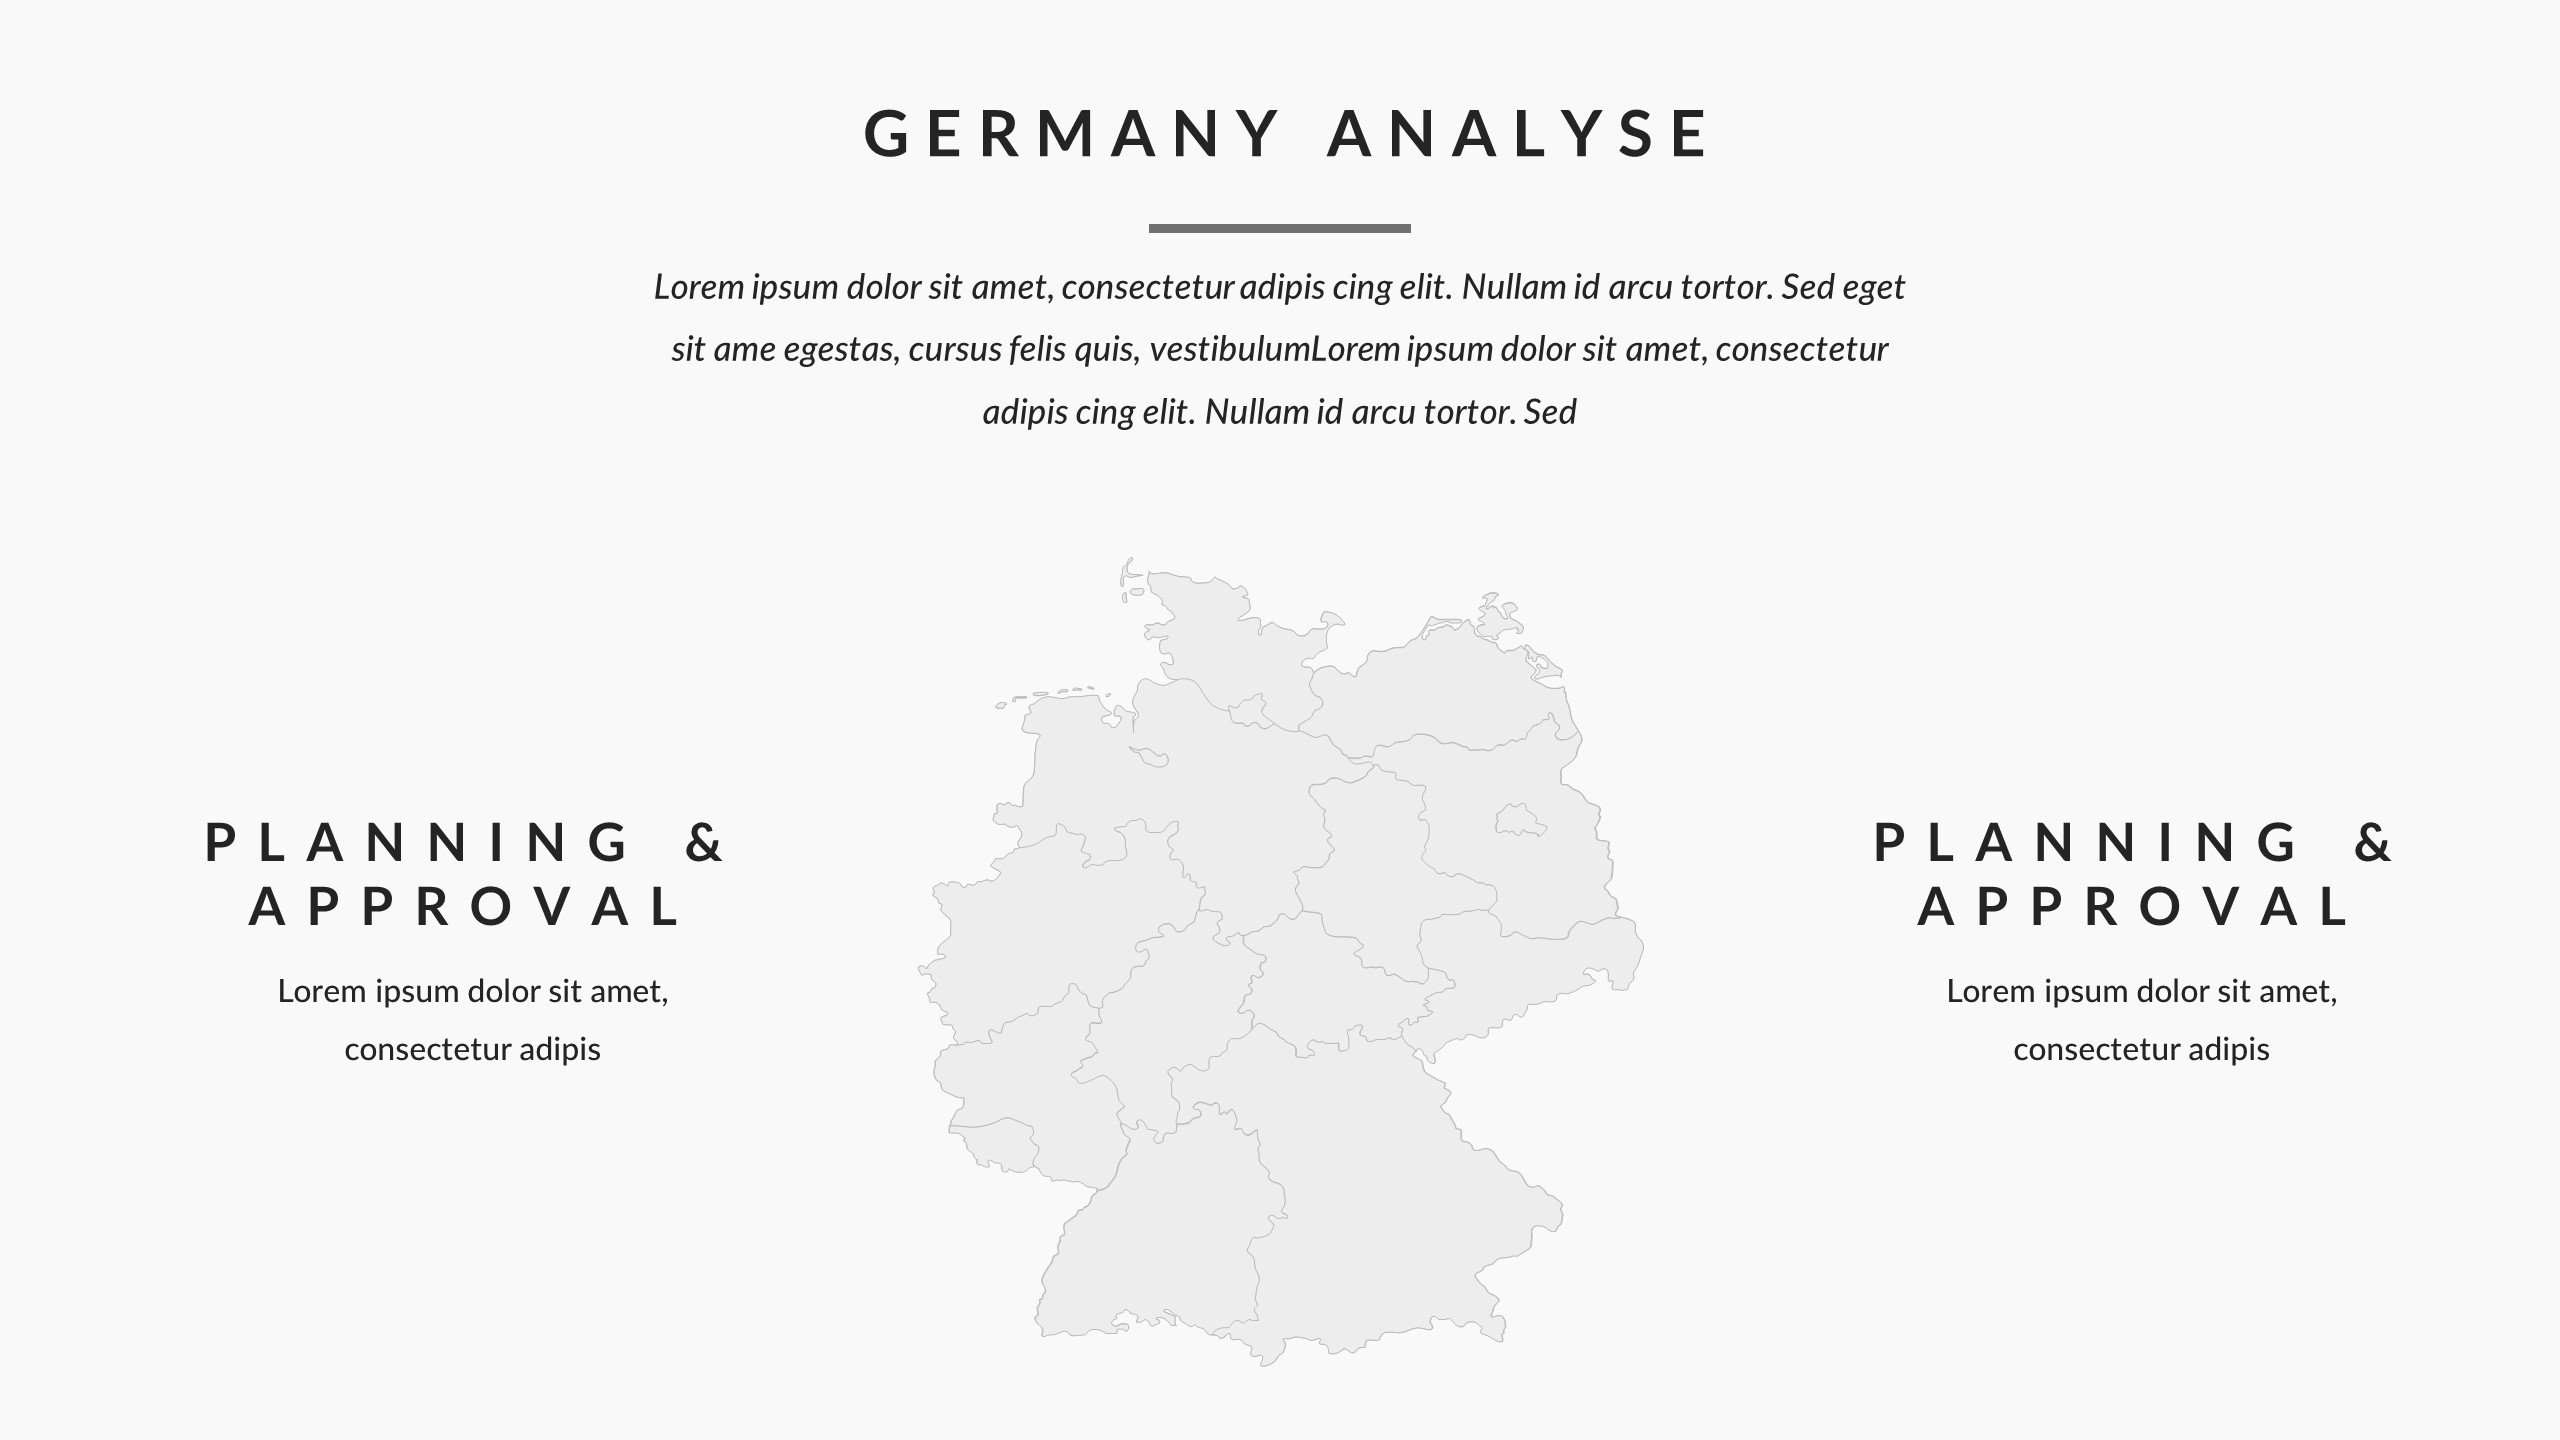 germany ppt template - Akba.greenw.co